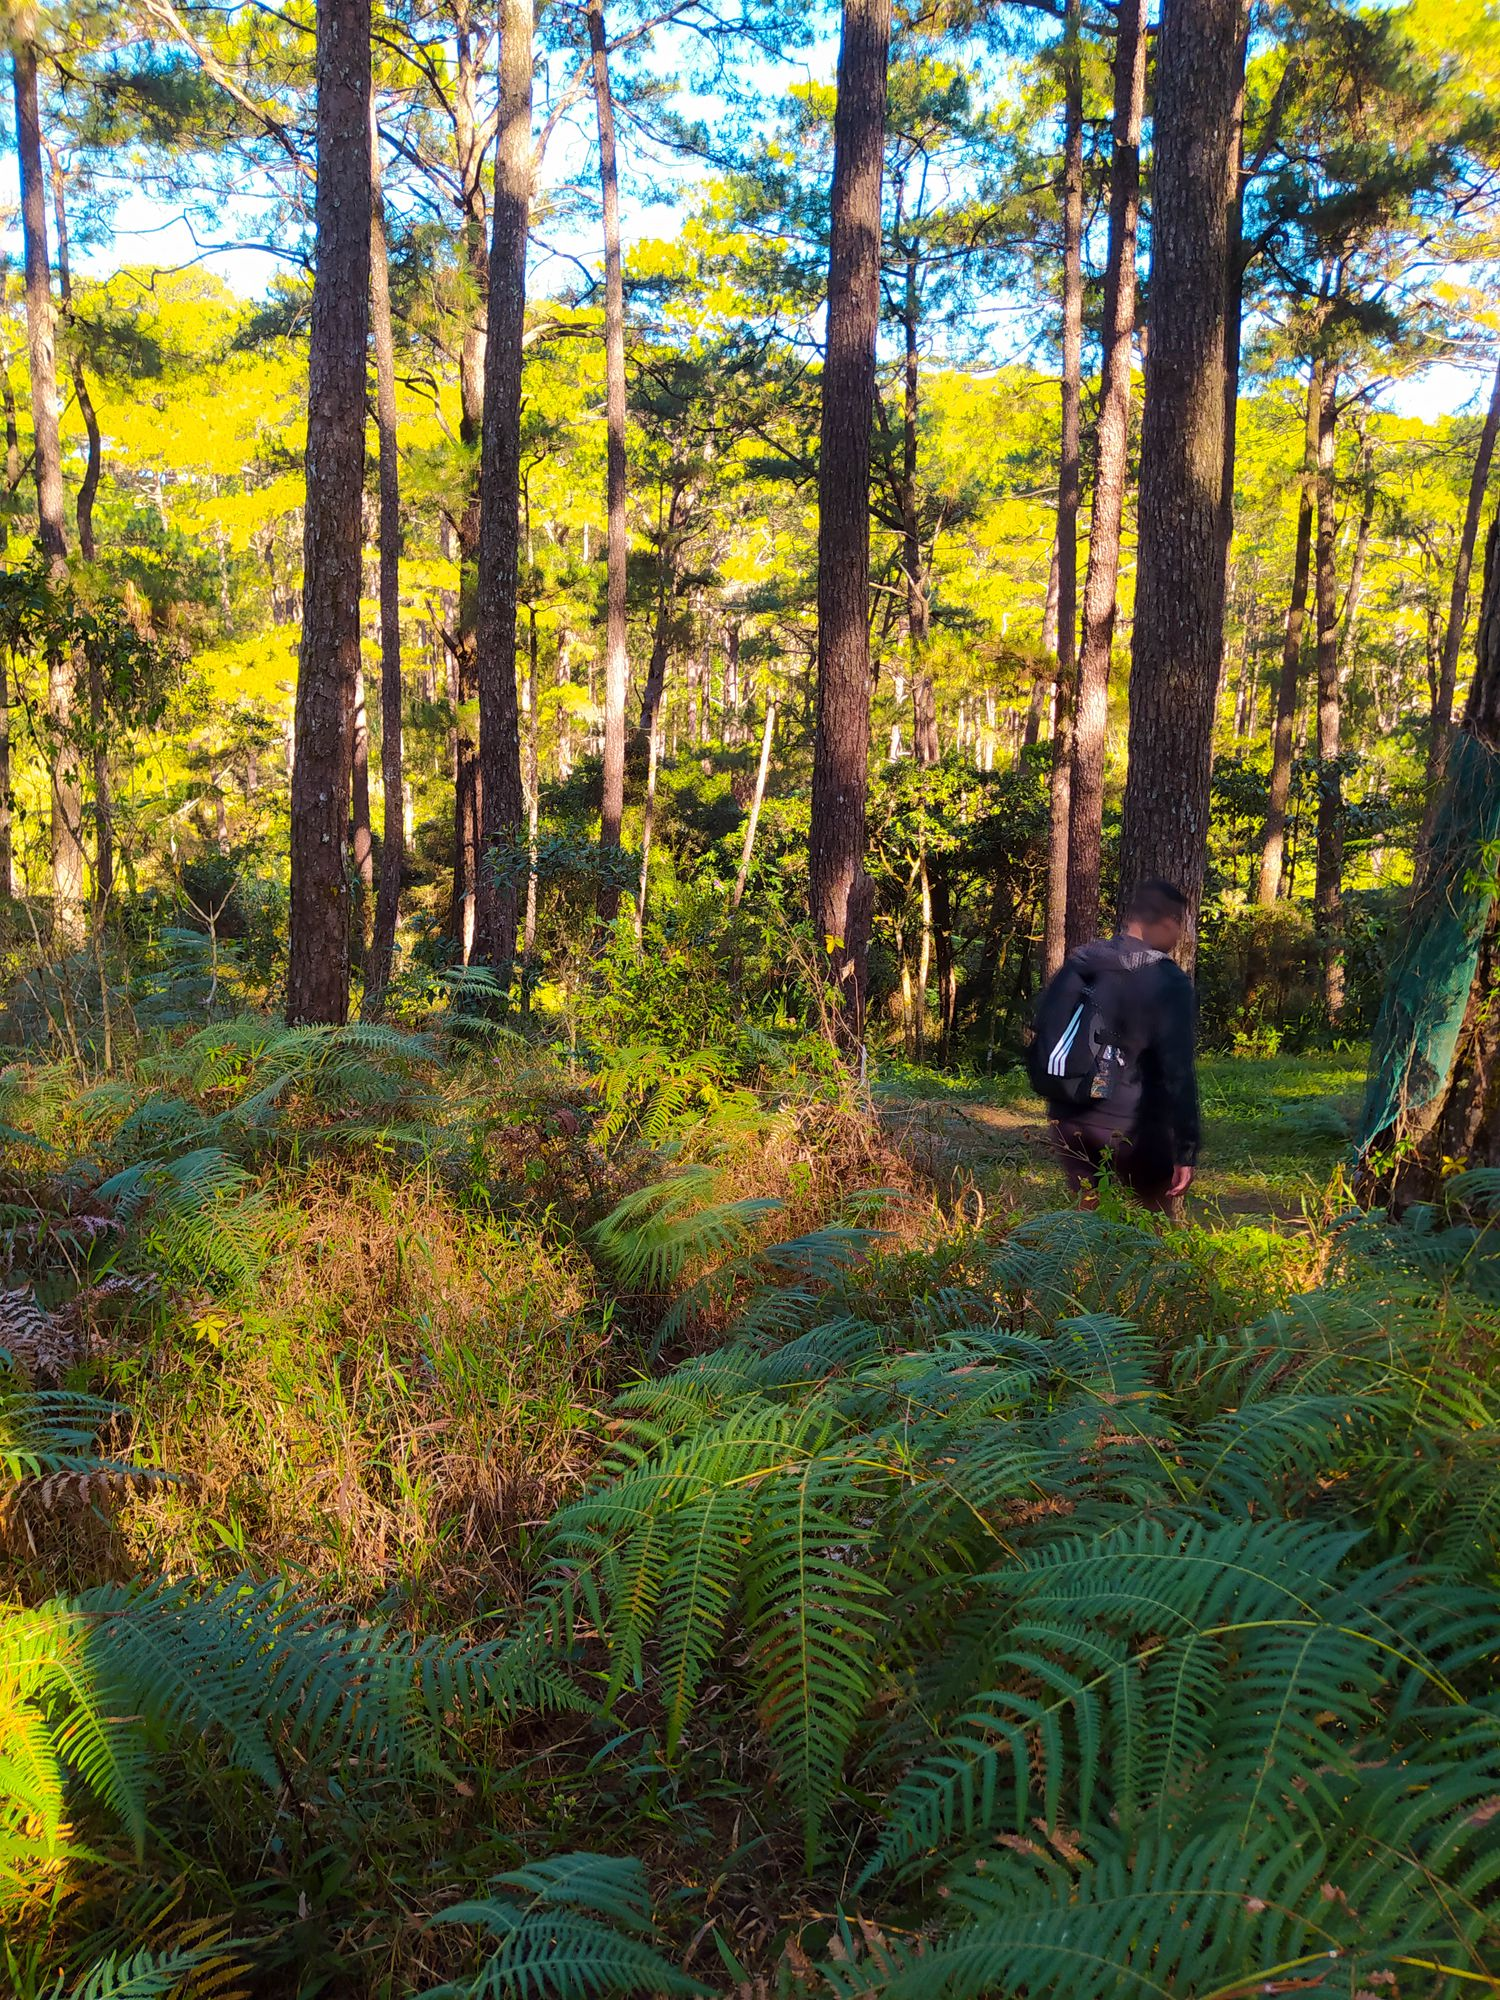 Man walking through a thick mass of ferns in the middles of a pine woodland